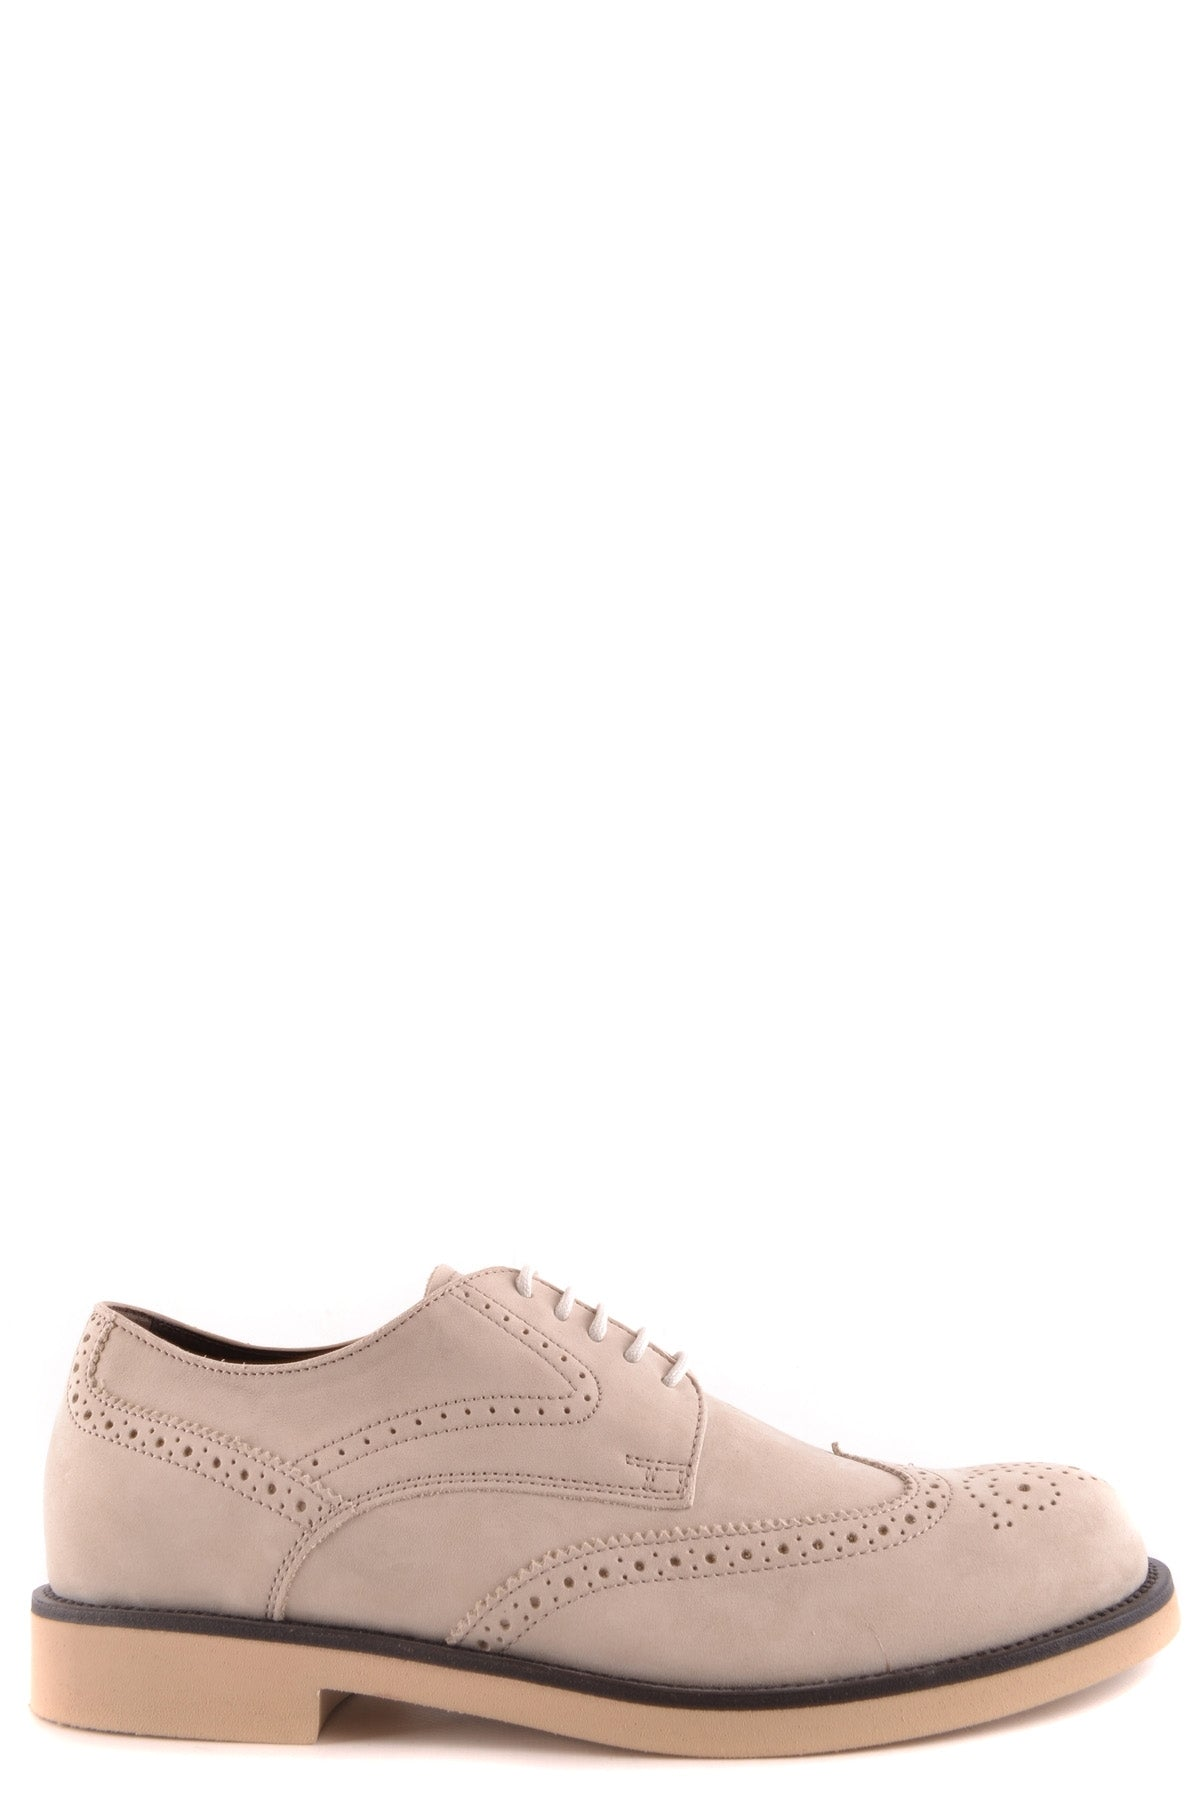 Shoes Tod'S-Derby - Shoes-7-Product Details Type Of Accessory: ShoesSeason: Spring / SummerTerms: New With LabelMain Color: GrayGender: ManMade In: ItalyManufacturer Part Number: Xxm0Wp00C10Fl1B203 Size: UkYear: 2017Composition: Chamois 100%-Keyomi-Sook